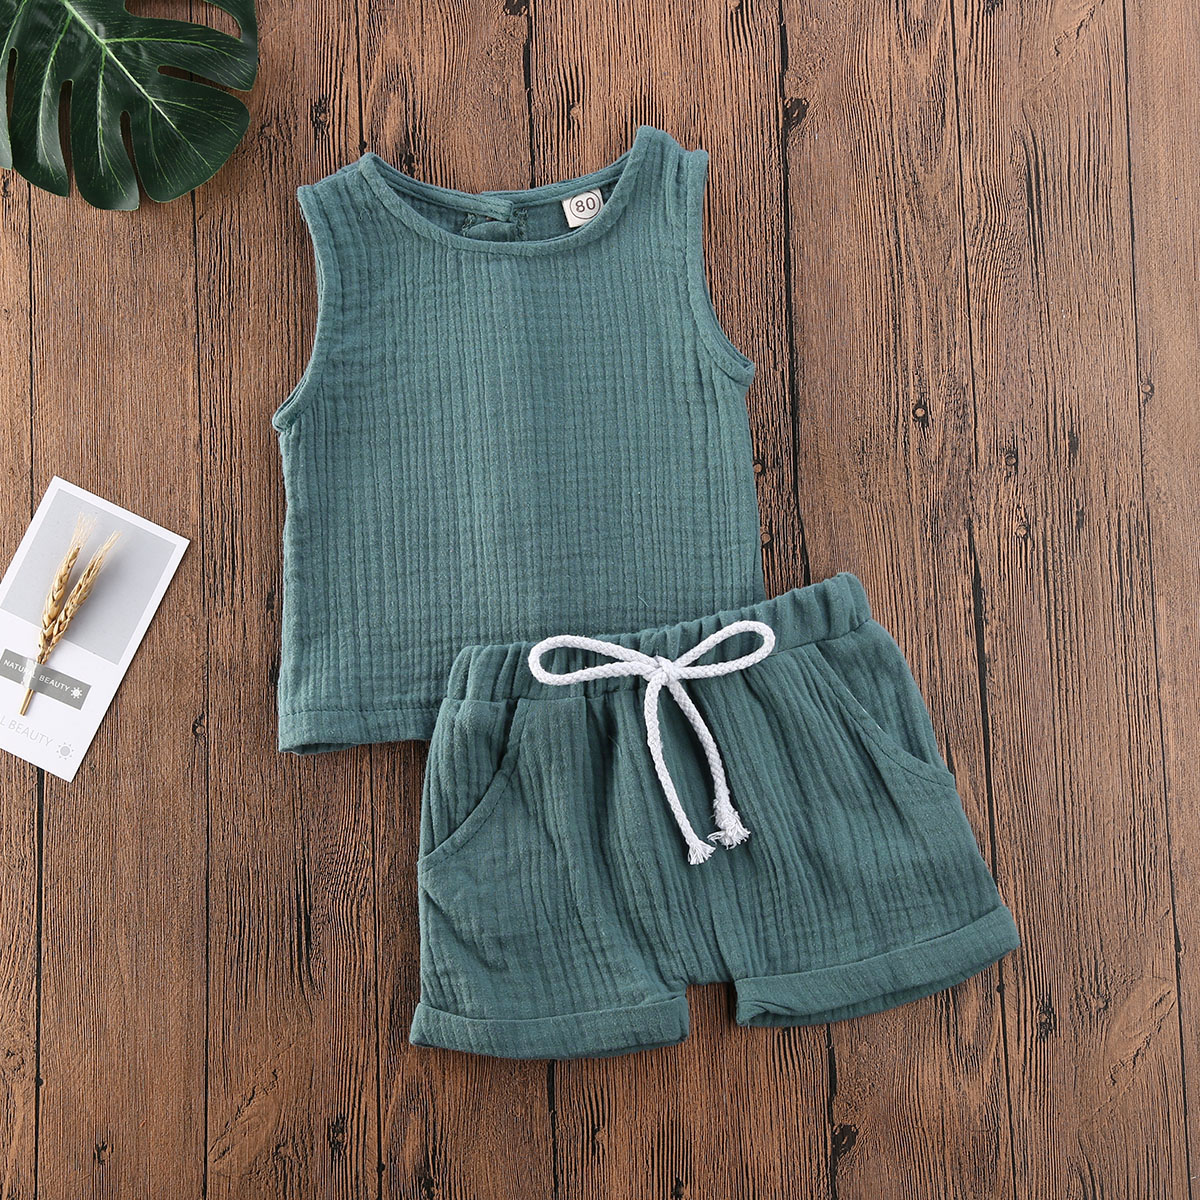 Emmababy Toddler Baby Boy Girl Clothes Solid Color Sleeveless Vest Tops Short Pants 2Pcs Outfits Knitted Cotton Clothes